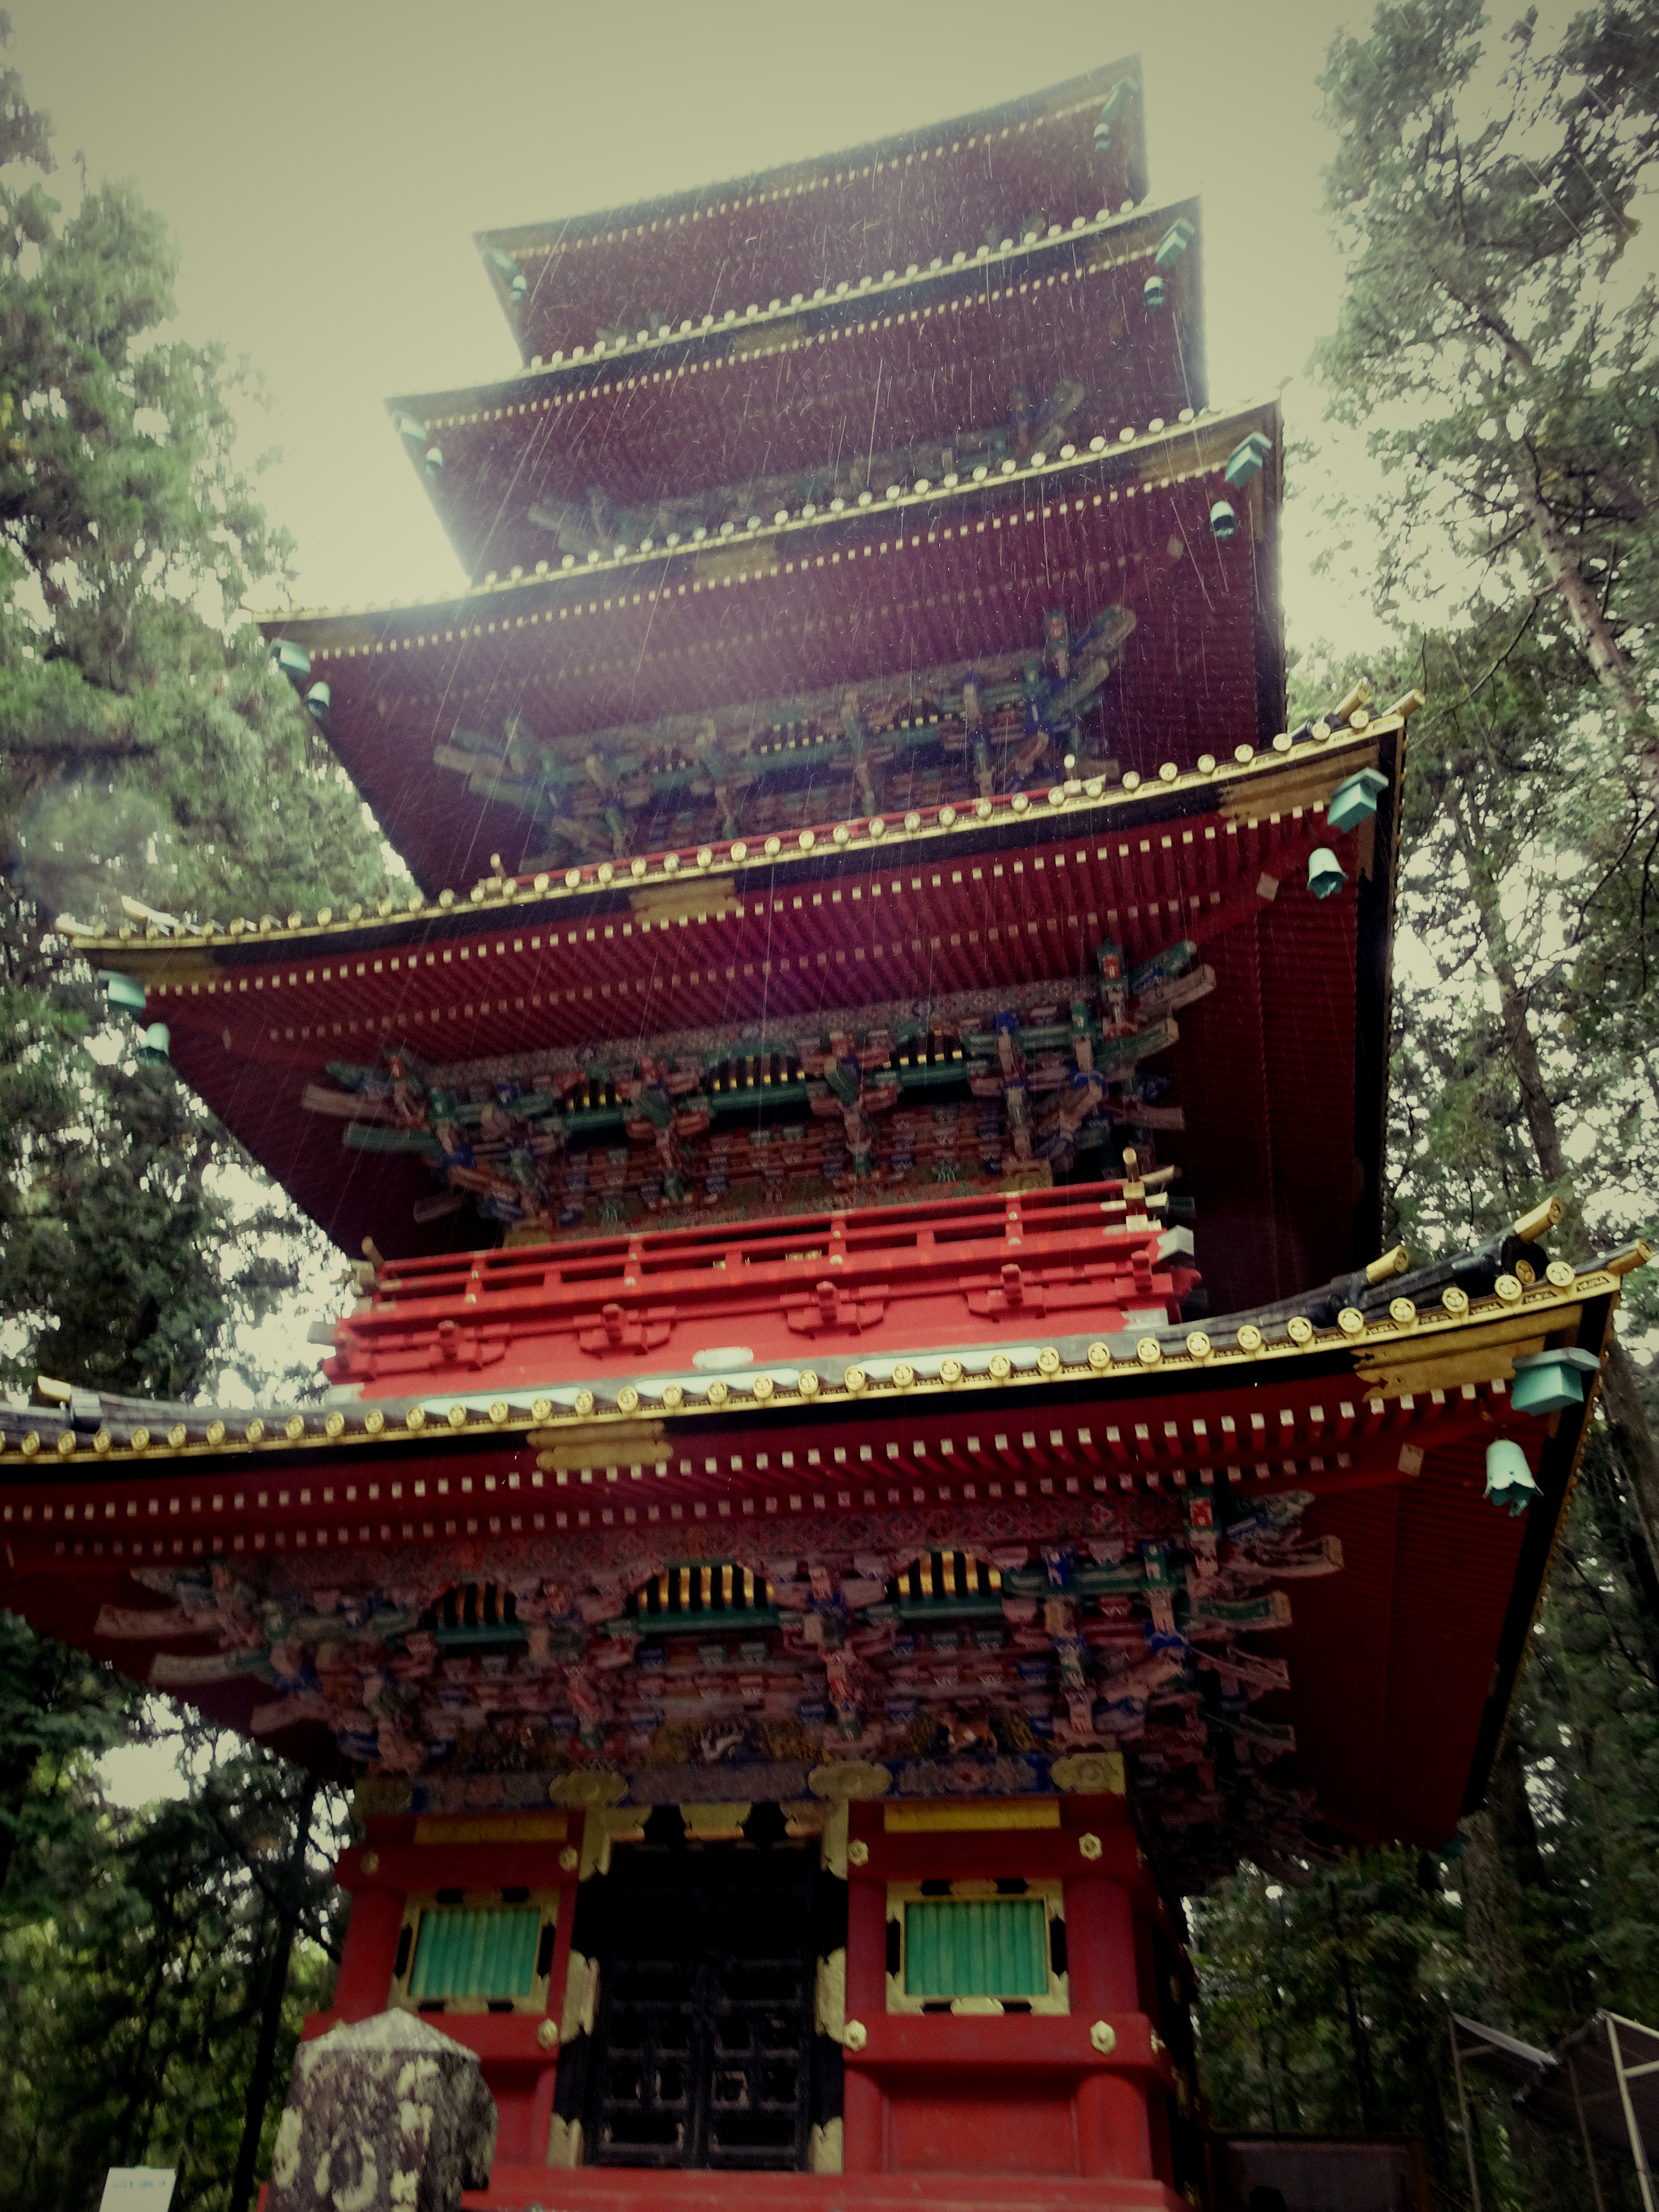 The 5-storey pagoda at Tosho-gu temple in Nikko